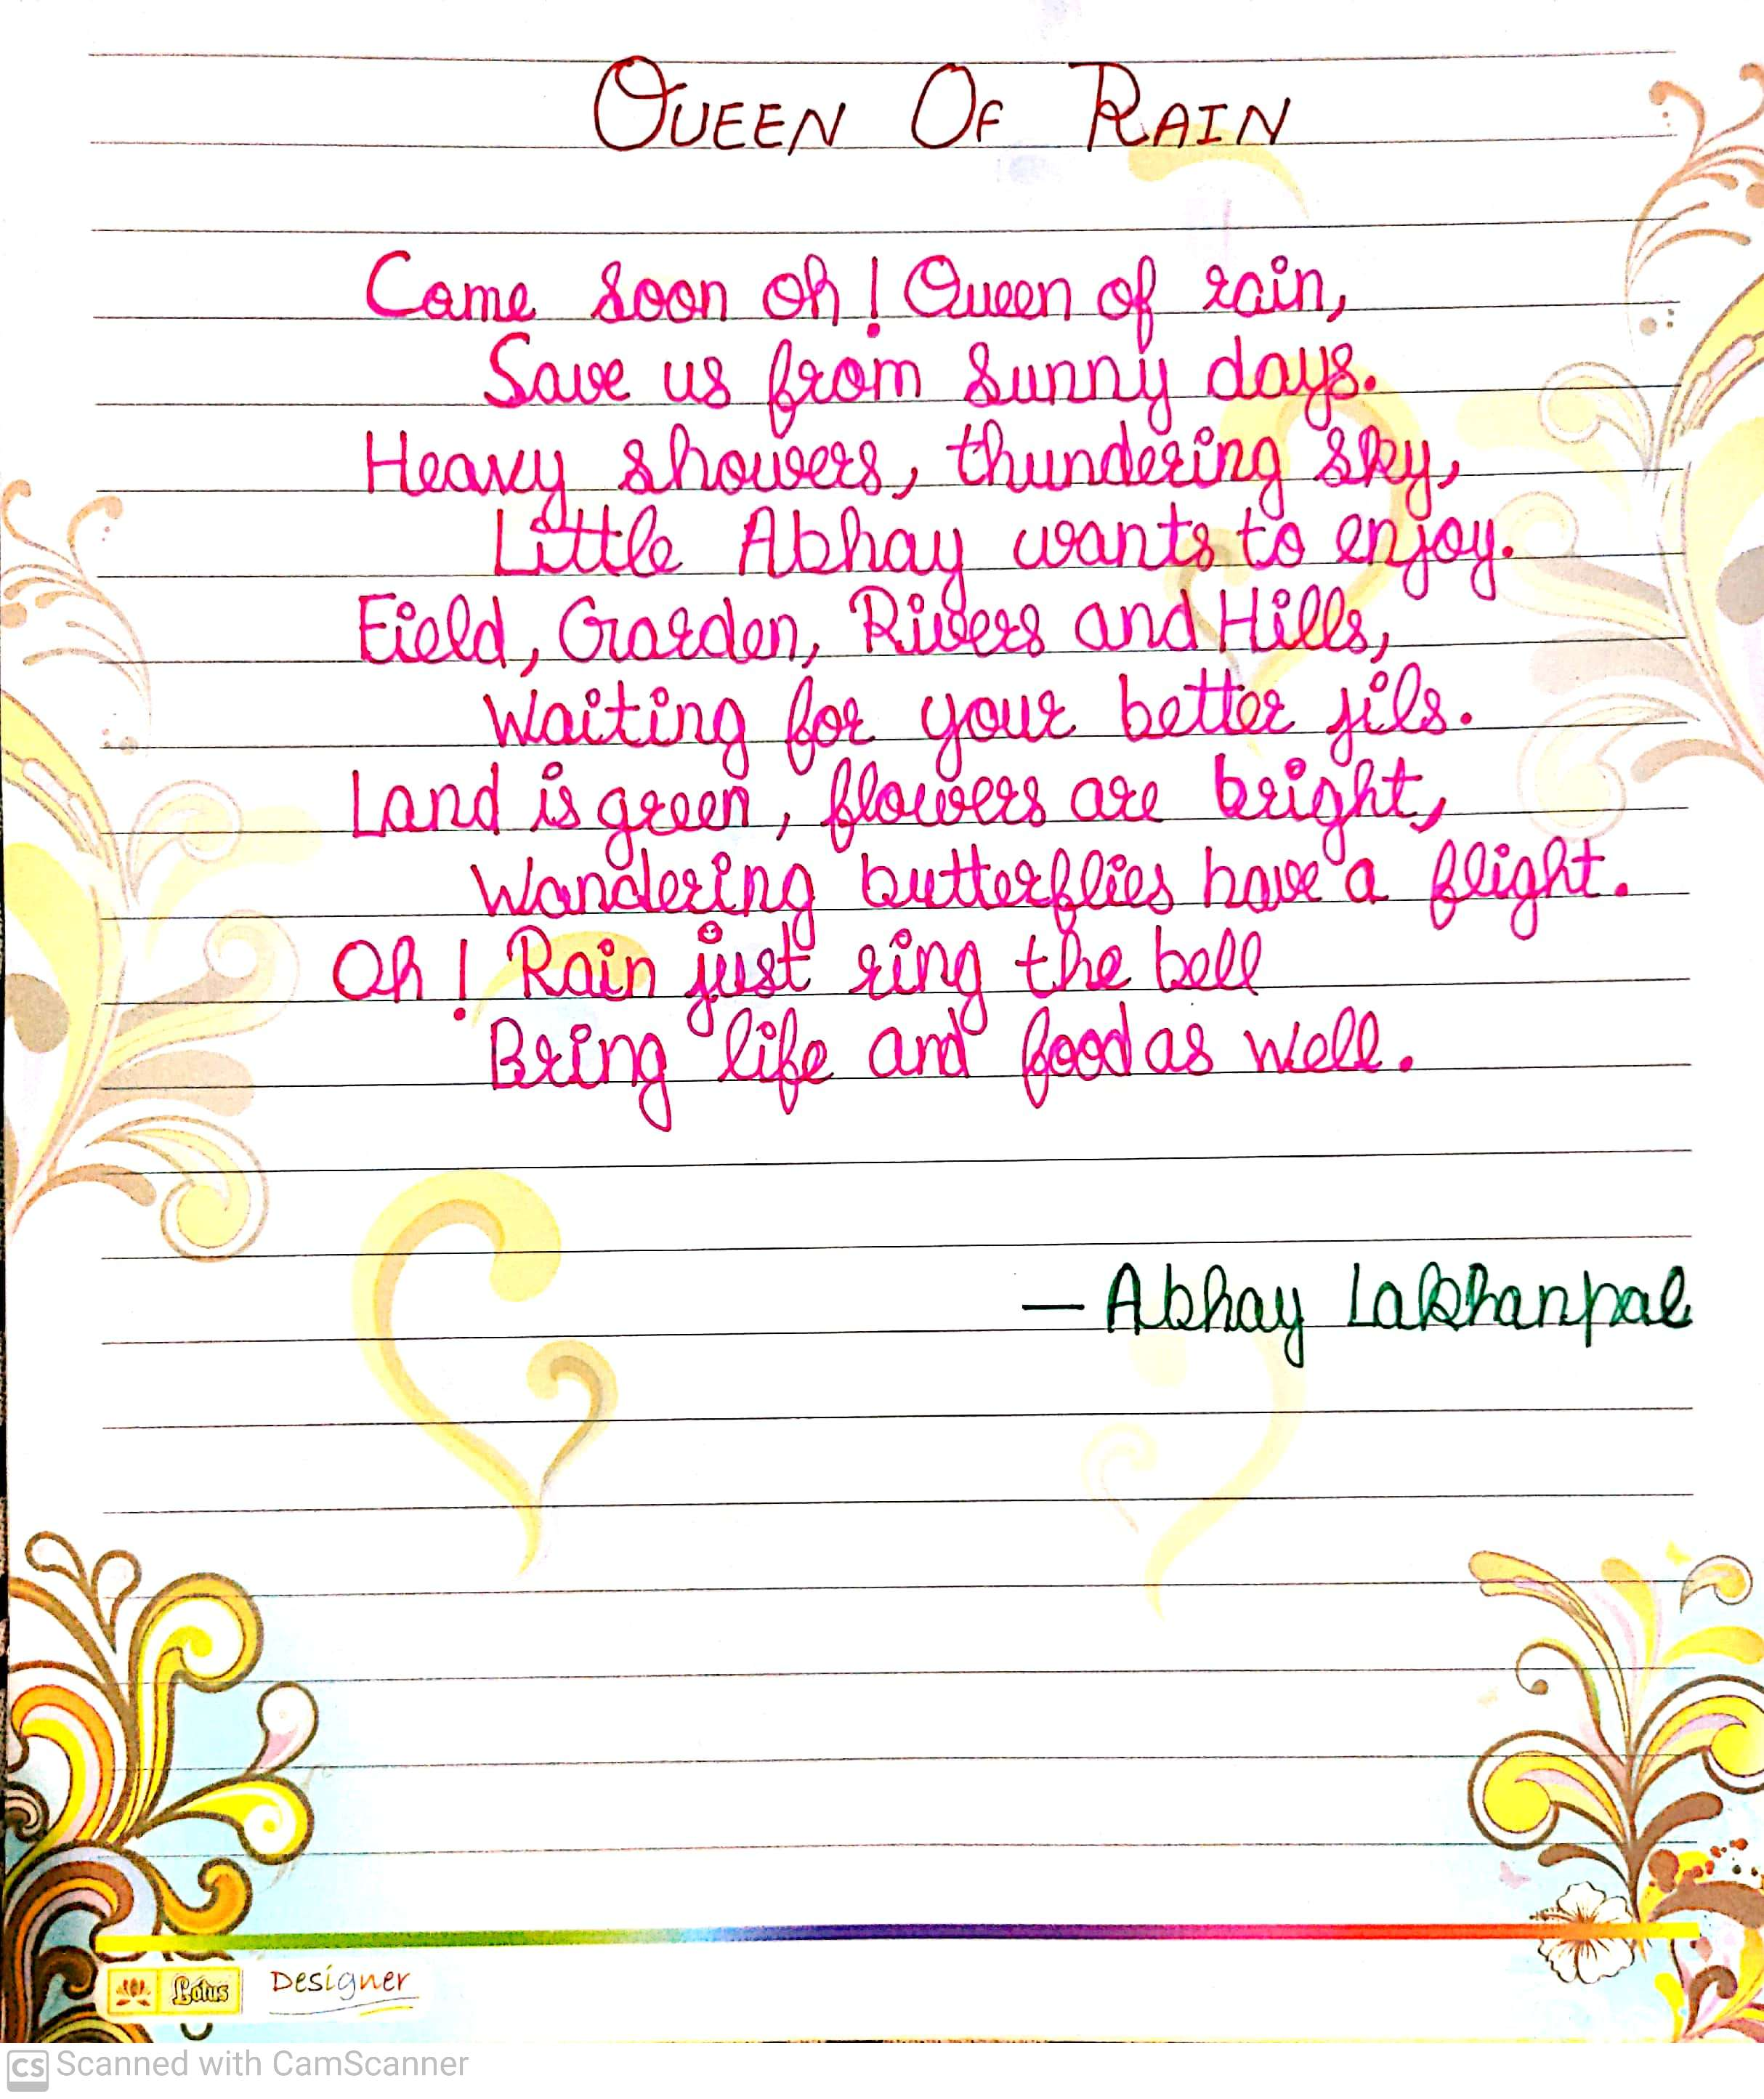 Abhay's Poem 'Queen Of Rains'